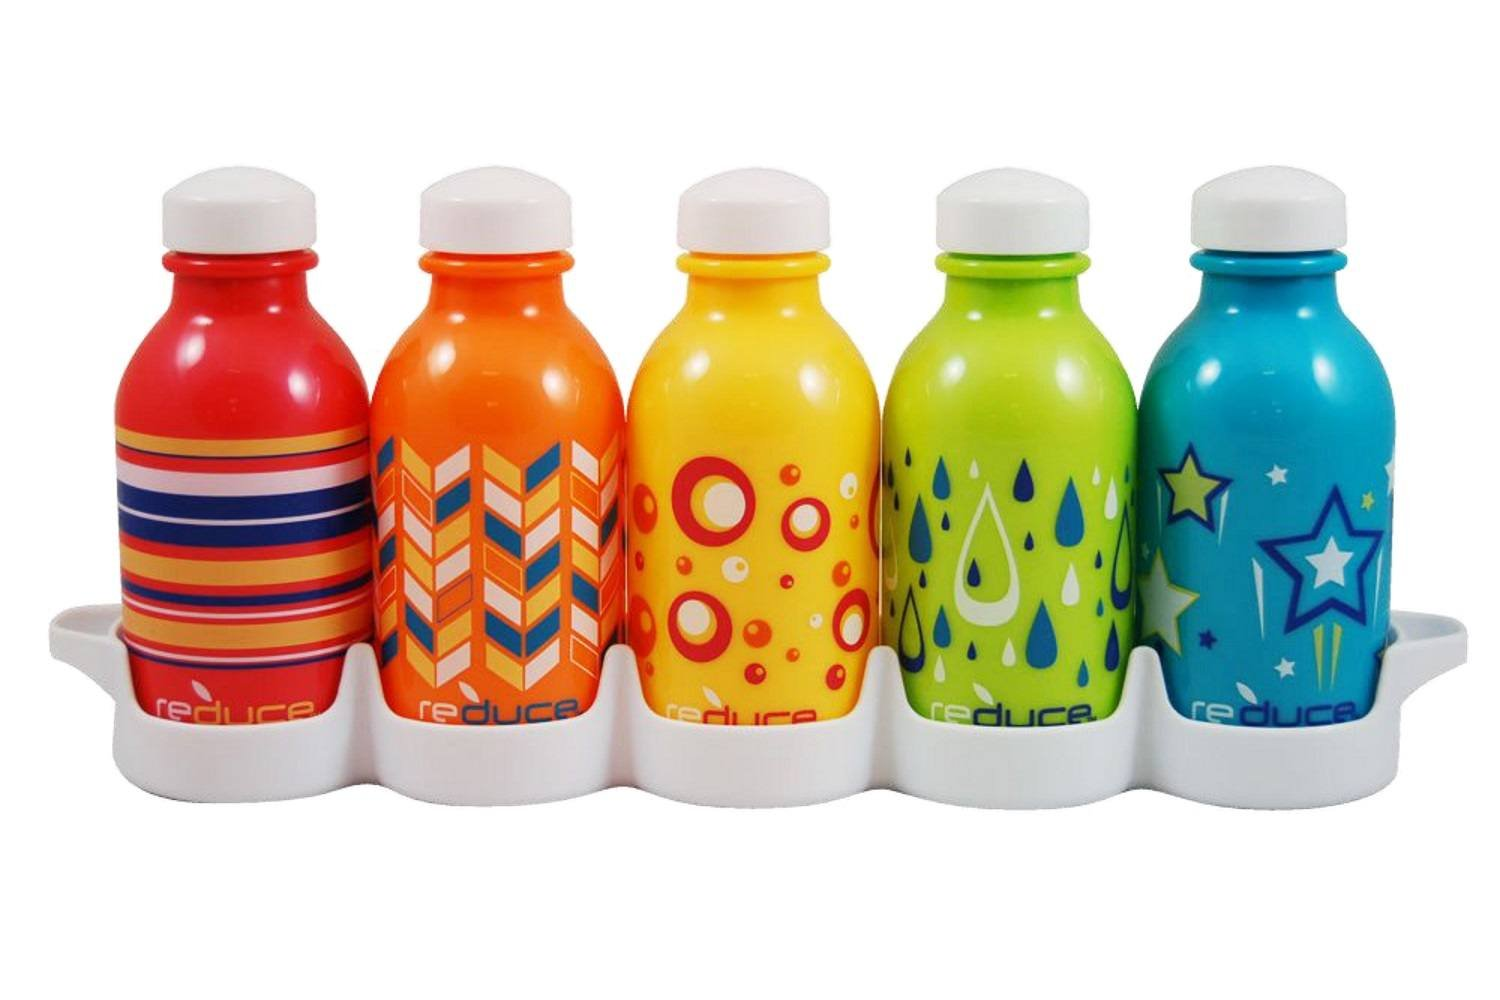 reduce WaterWeek Kids Reusable Water Bottle Set with Fridge Tray Organizer – 5 Pack, 10oz - BPA-free, Leak Proof Twist Off Cap – Assorted Colors - Perfect for Lunchboxes